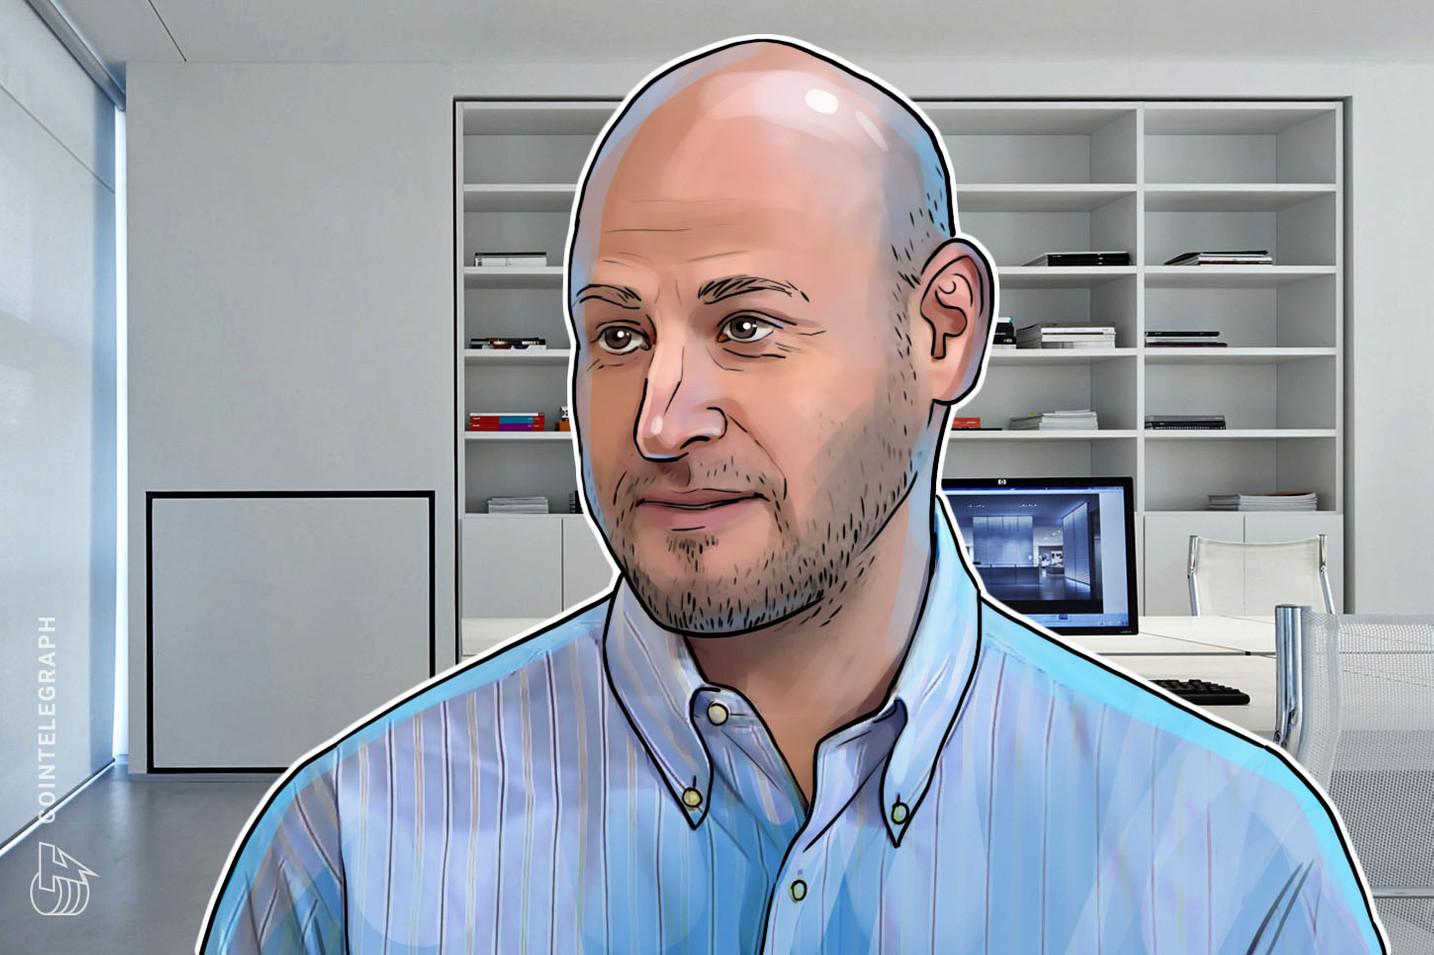 Ethereum's Joe Lubin: Blockchain Will Help to Create More Wealth